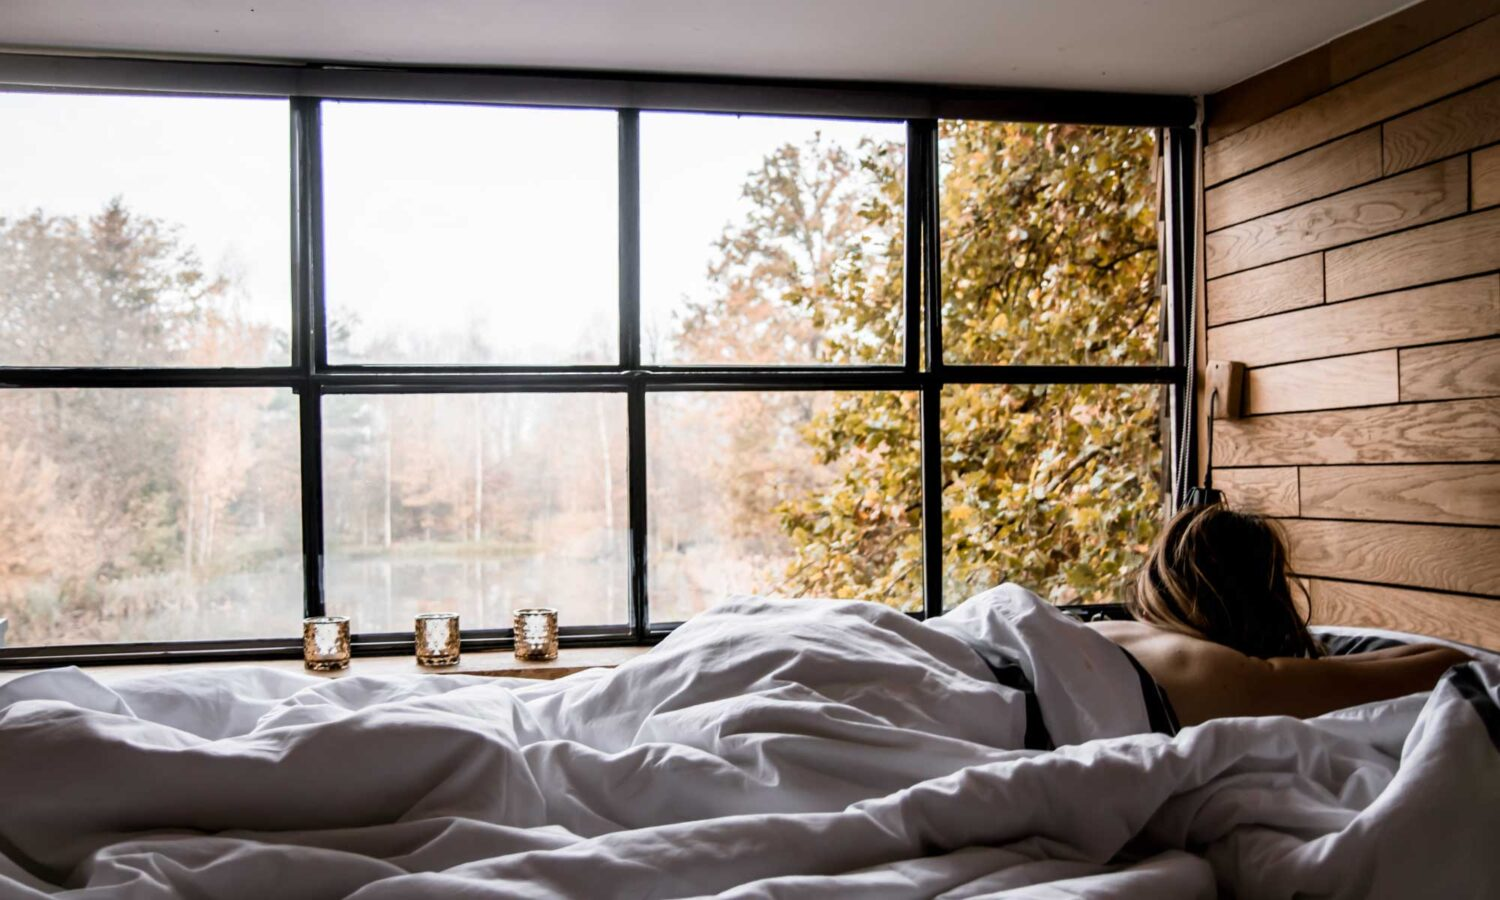 Waking up with an incredible view over the lake at the Belgium Tiny House: The Forest